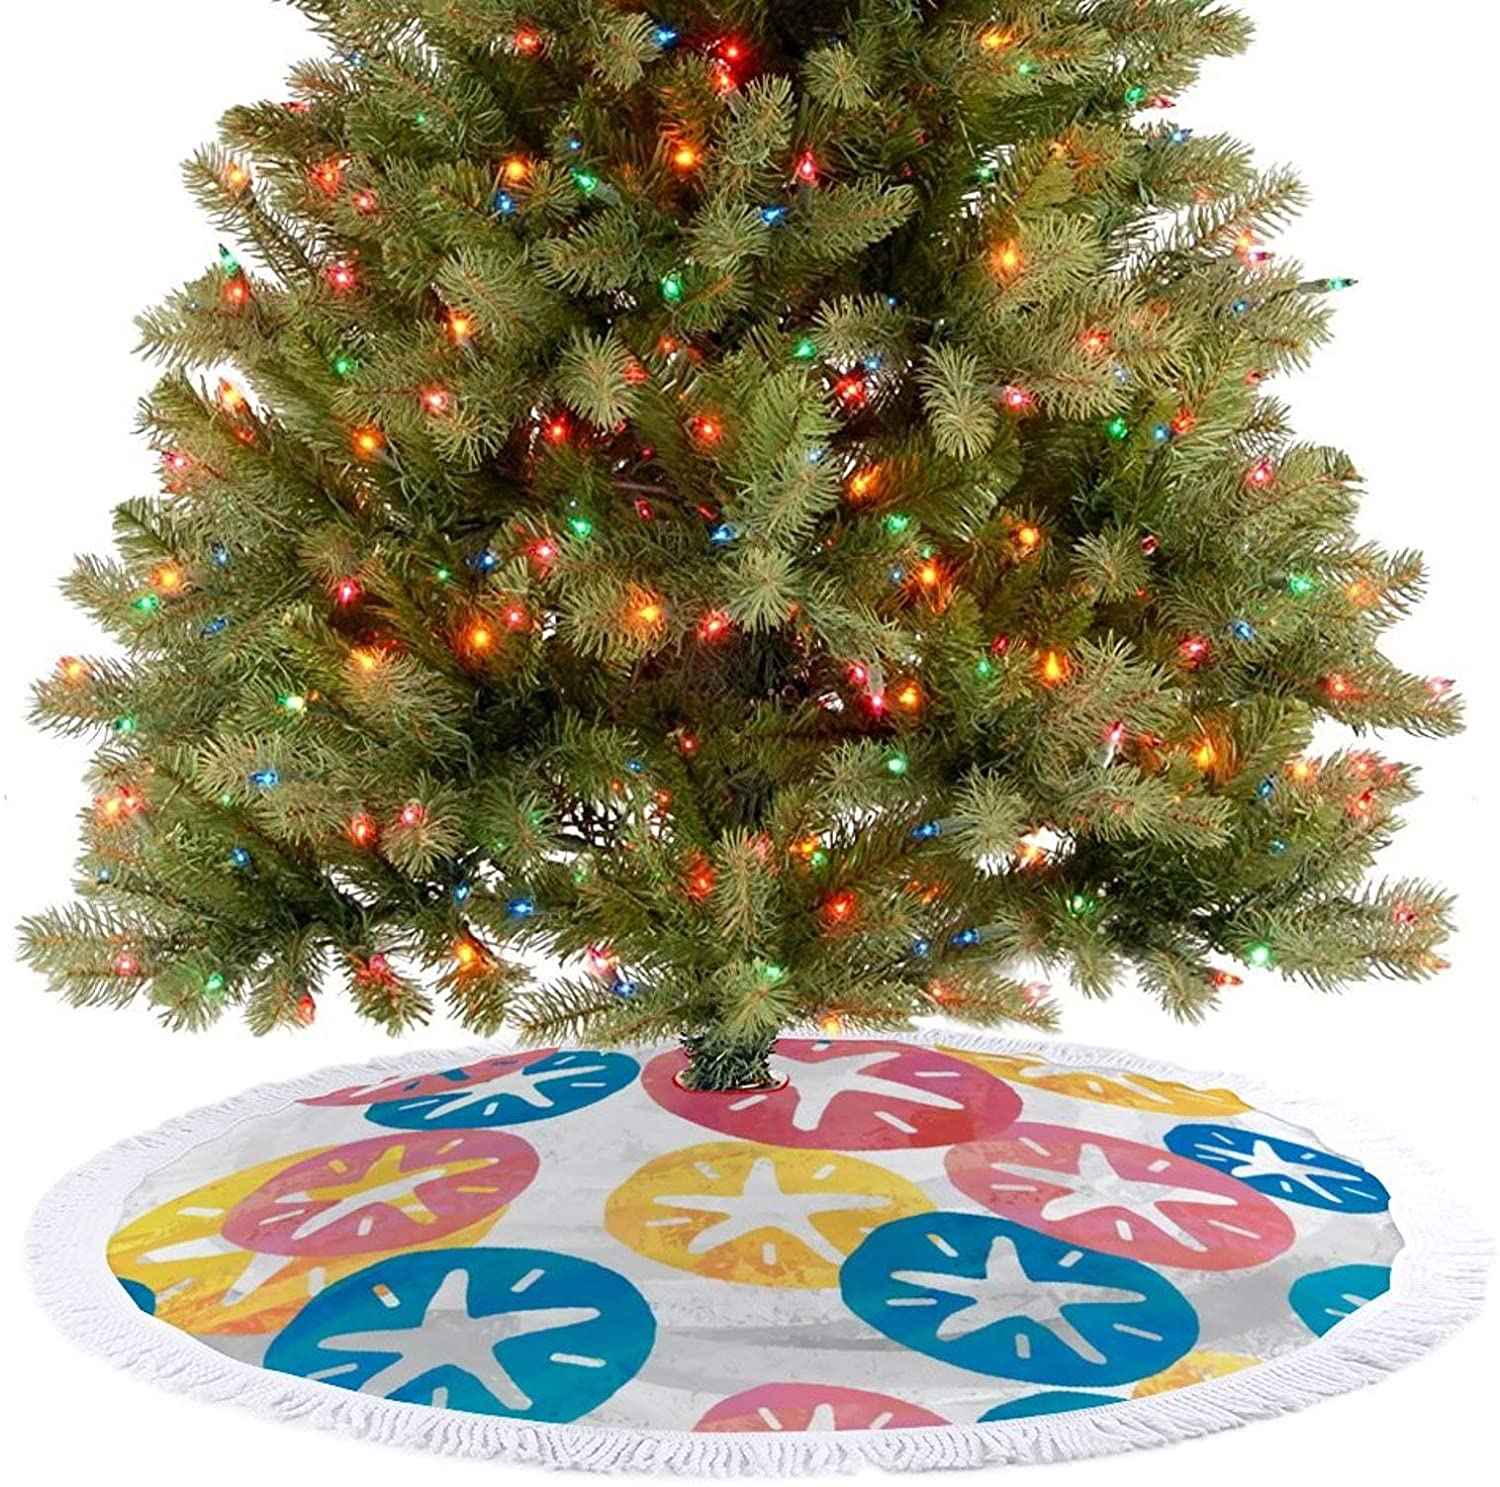 JHSLAJ Sand Dollar Yellow Red Blue Pattern Christmas Tree Skirt for Xmas New Year Holiday Decorations Indoor or Outdoor